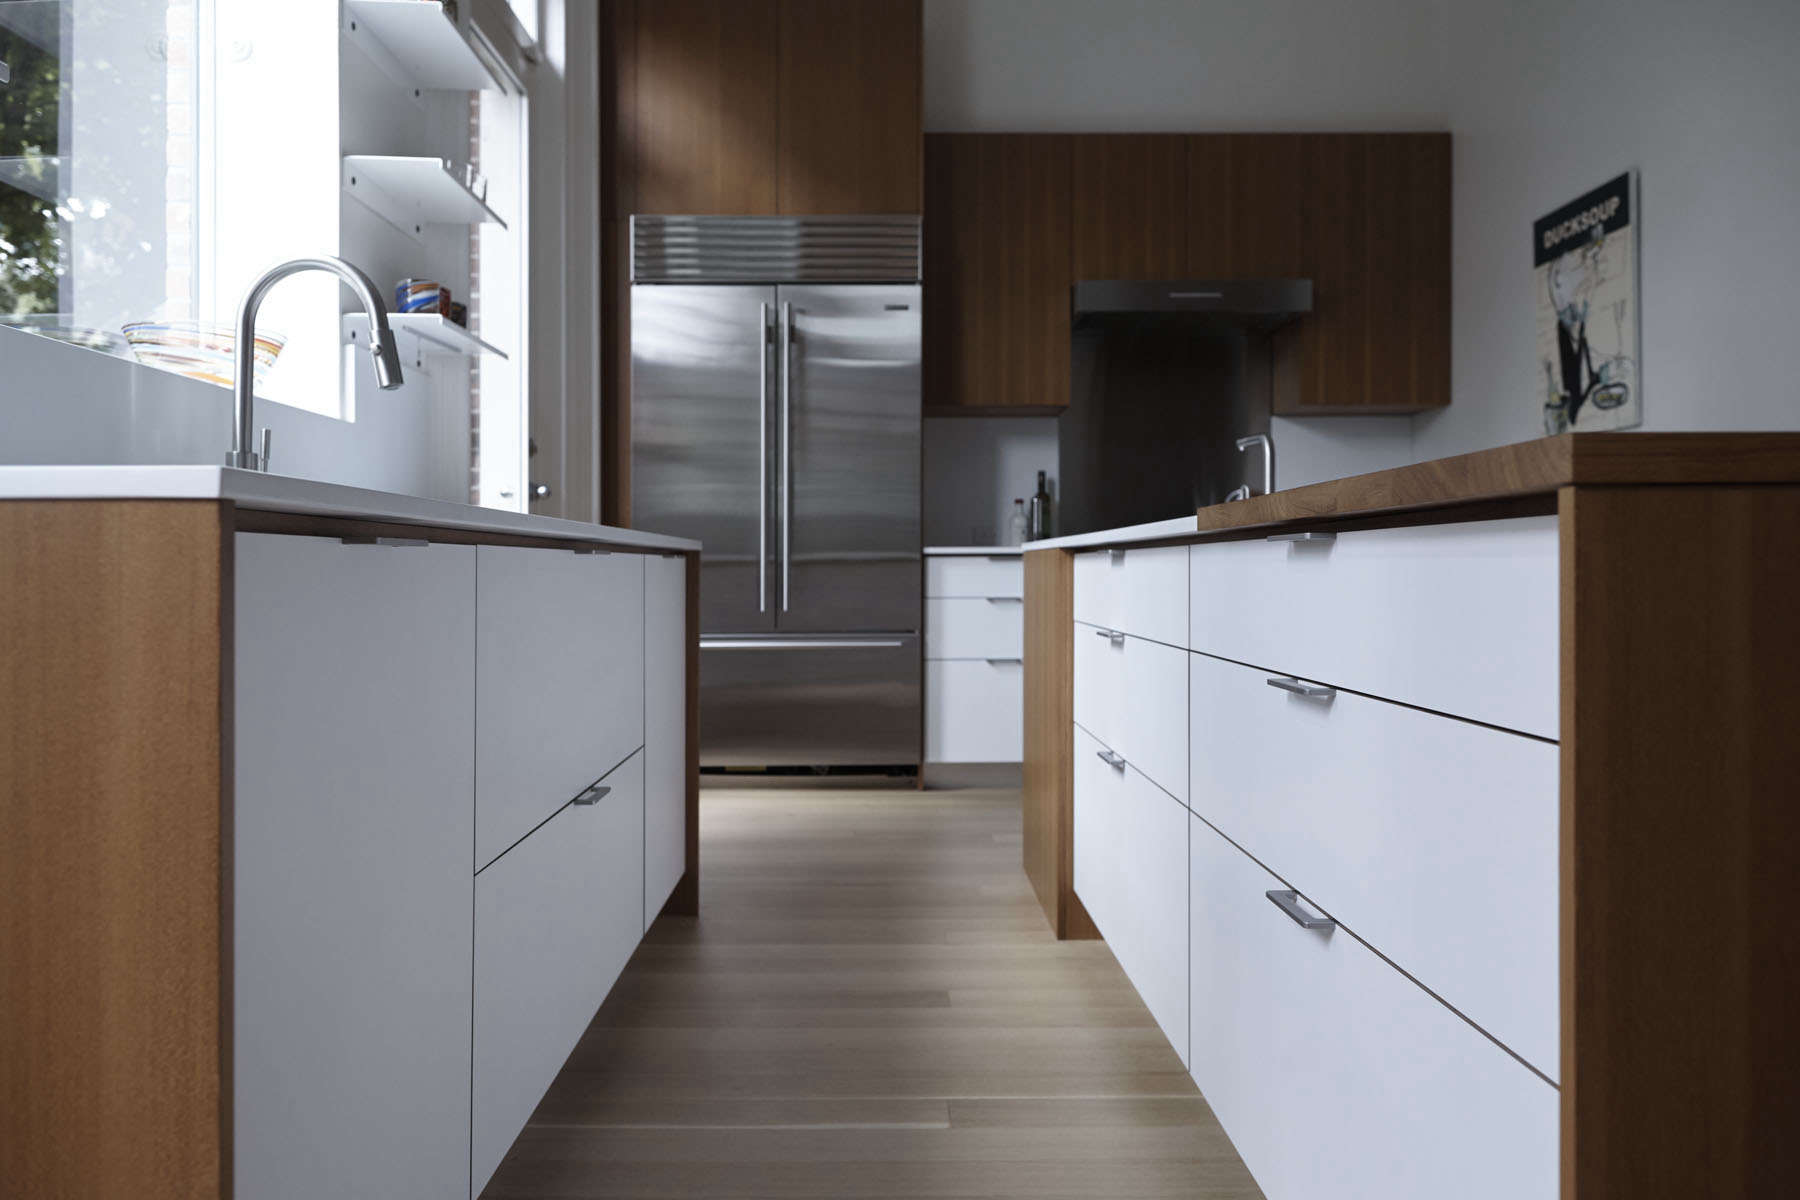 A clean-lined kitchen remodel by architect Shauna McManus and Henrybuilt. The countertops are Caesarstone, the cabinets are teak and white laminate